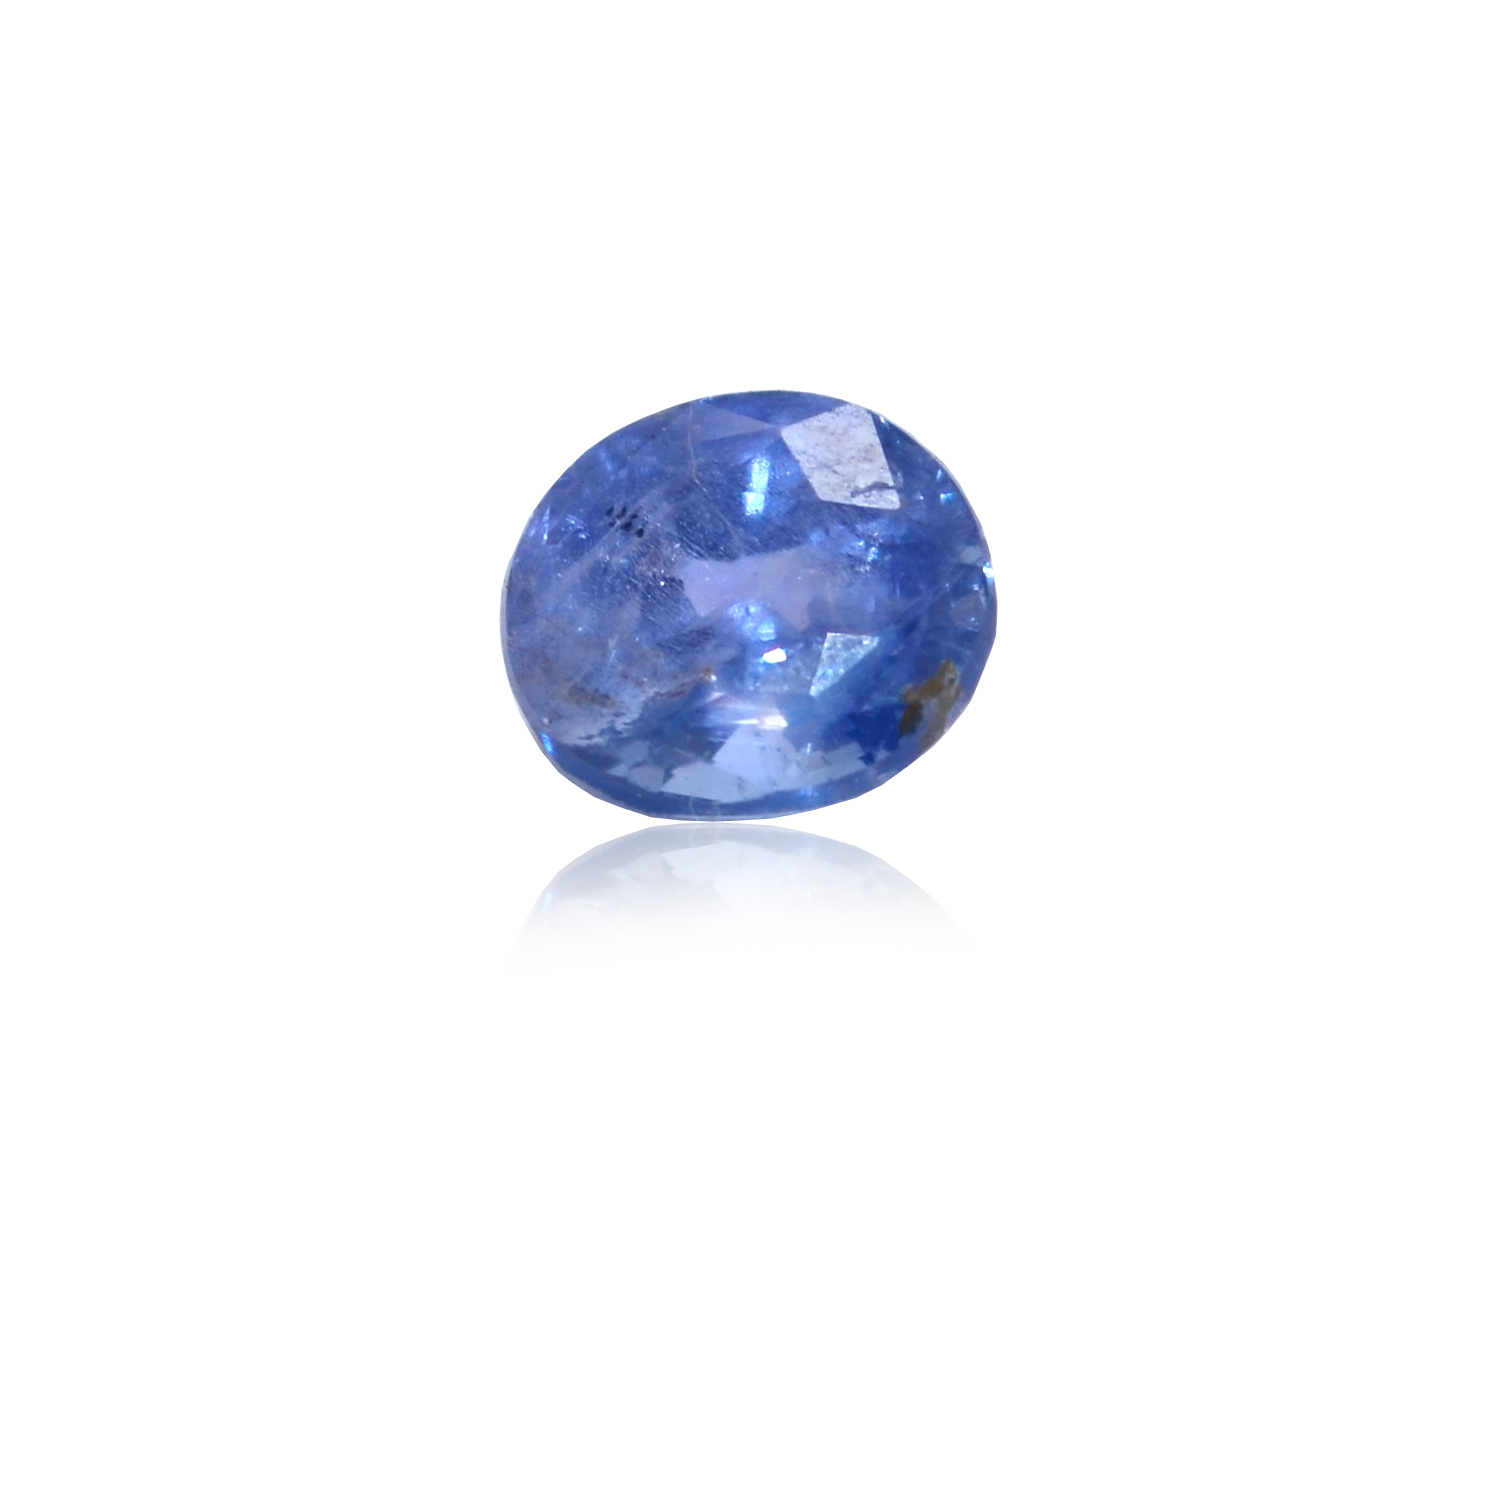 2.95 CARAT, OVAL MIXED CUT NATURAL BLUE SAPPHIRE